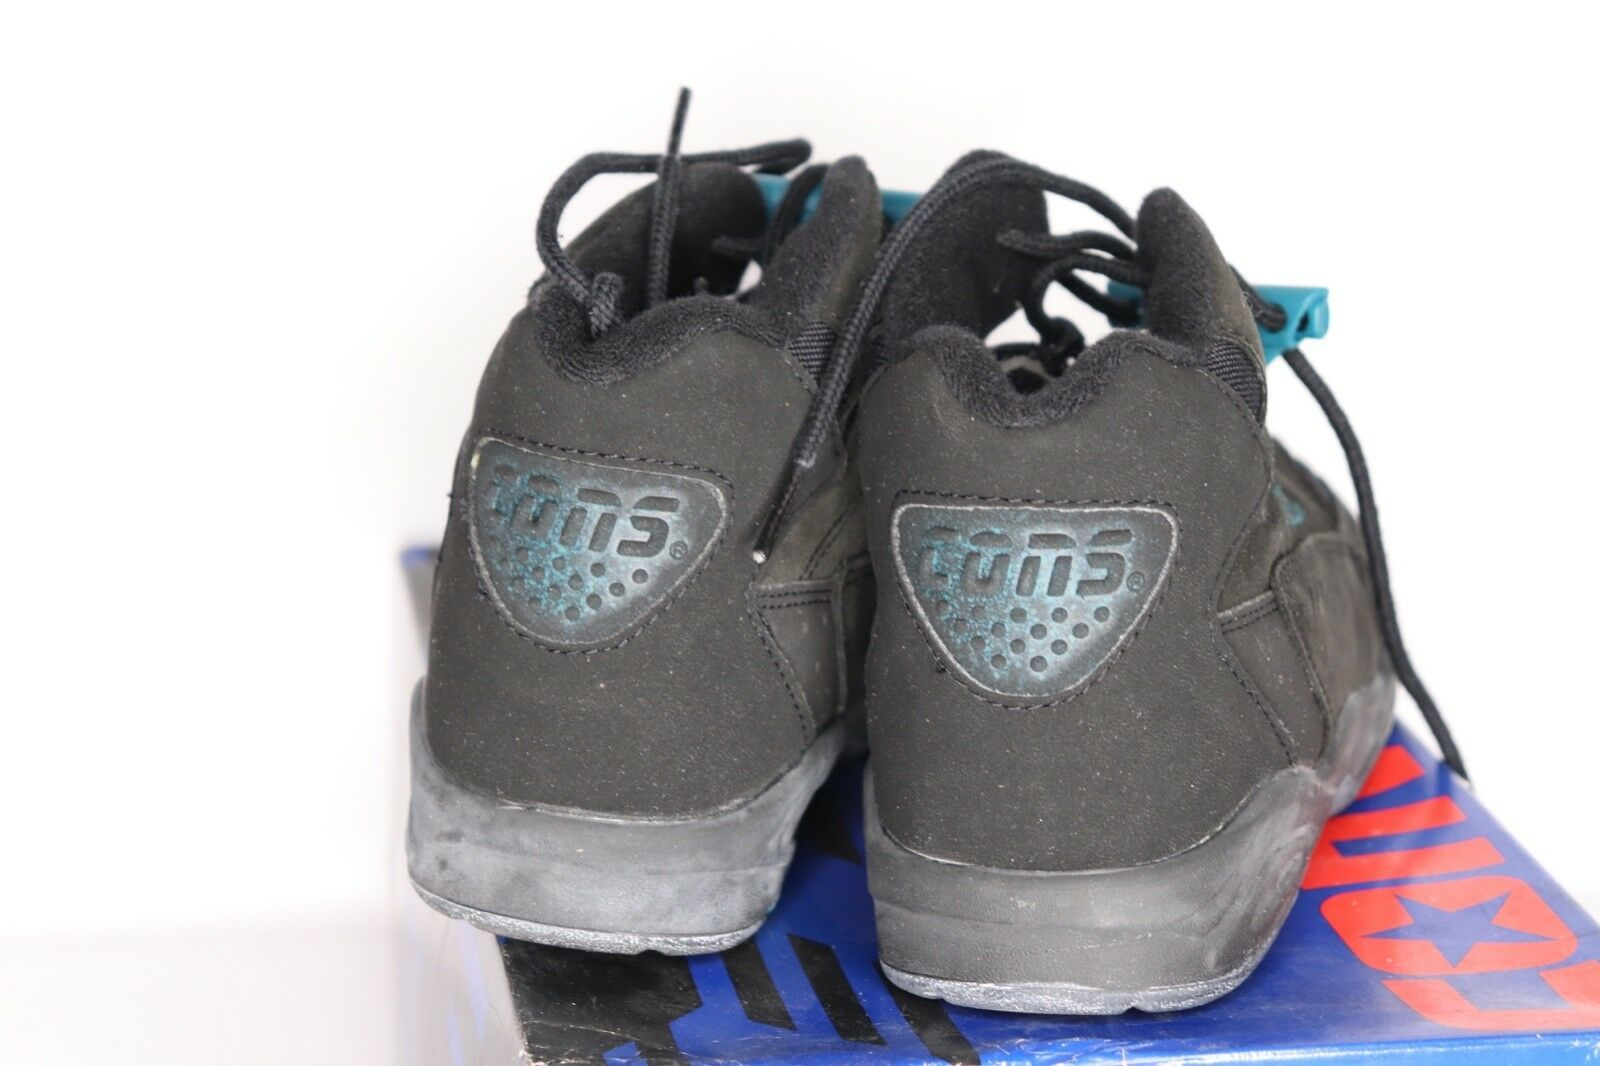 Vintage 90s New Converse Youth 5.5 Speed Pull Mid Leather Basketball Shoes Black